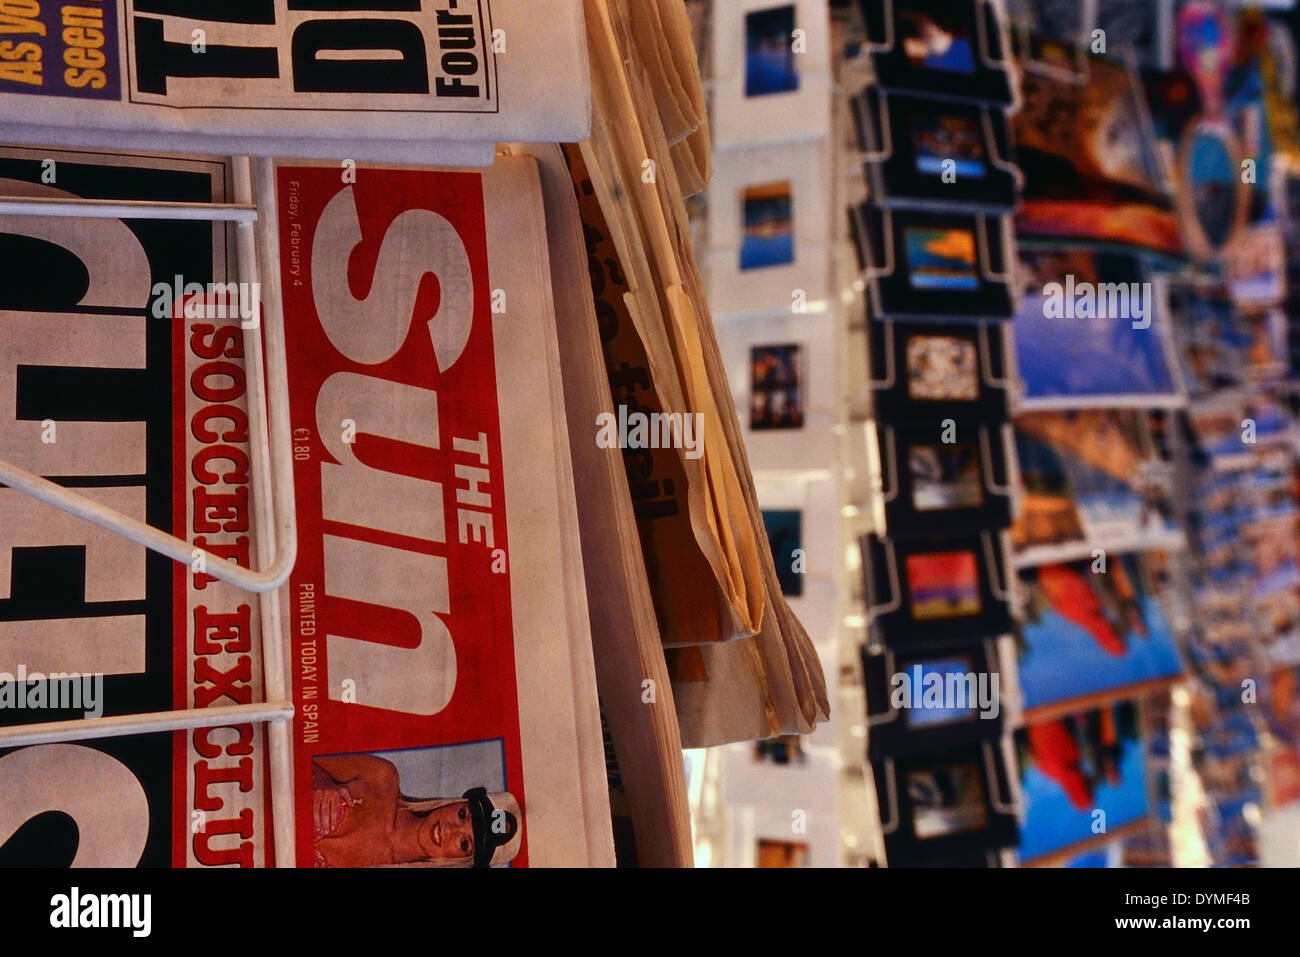 British tabloid newspapers for sale in Spain. Stock Photo